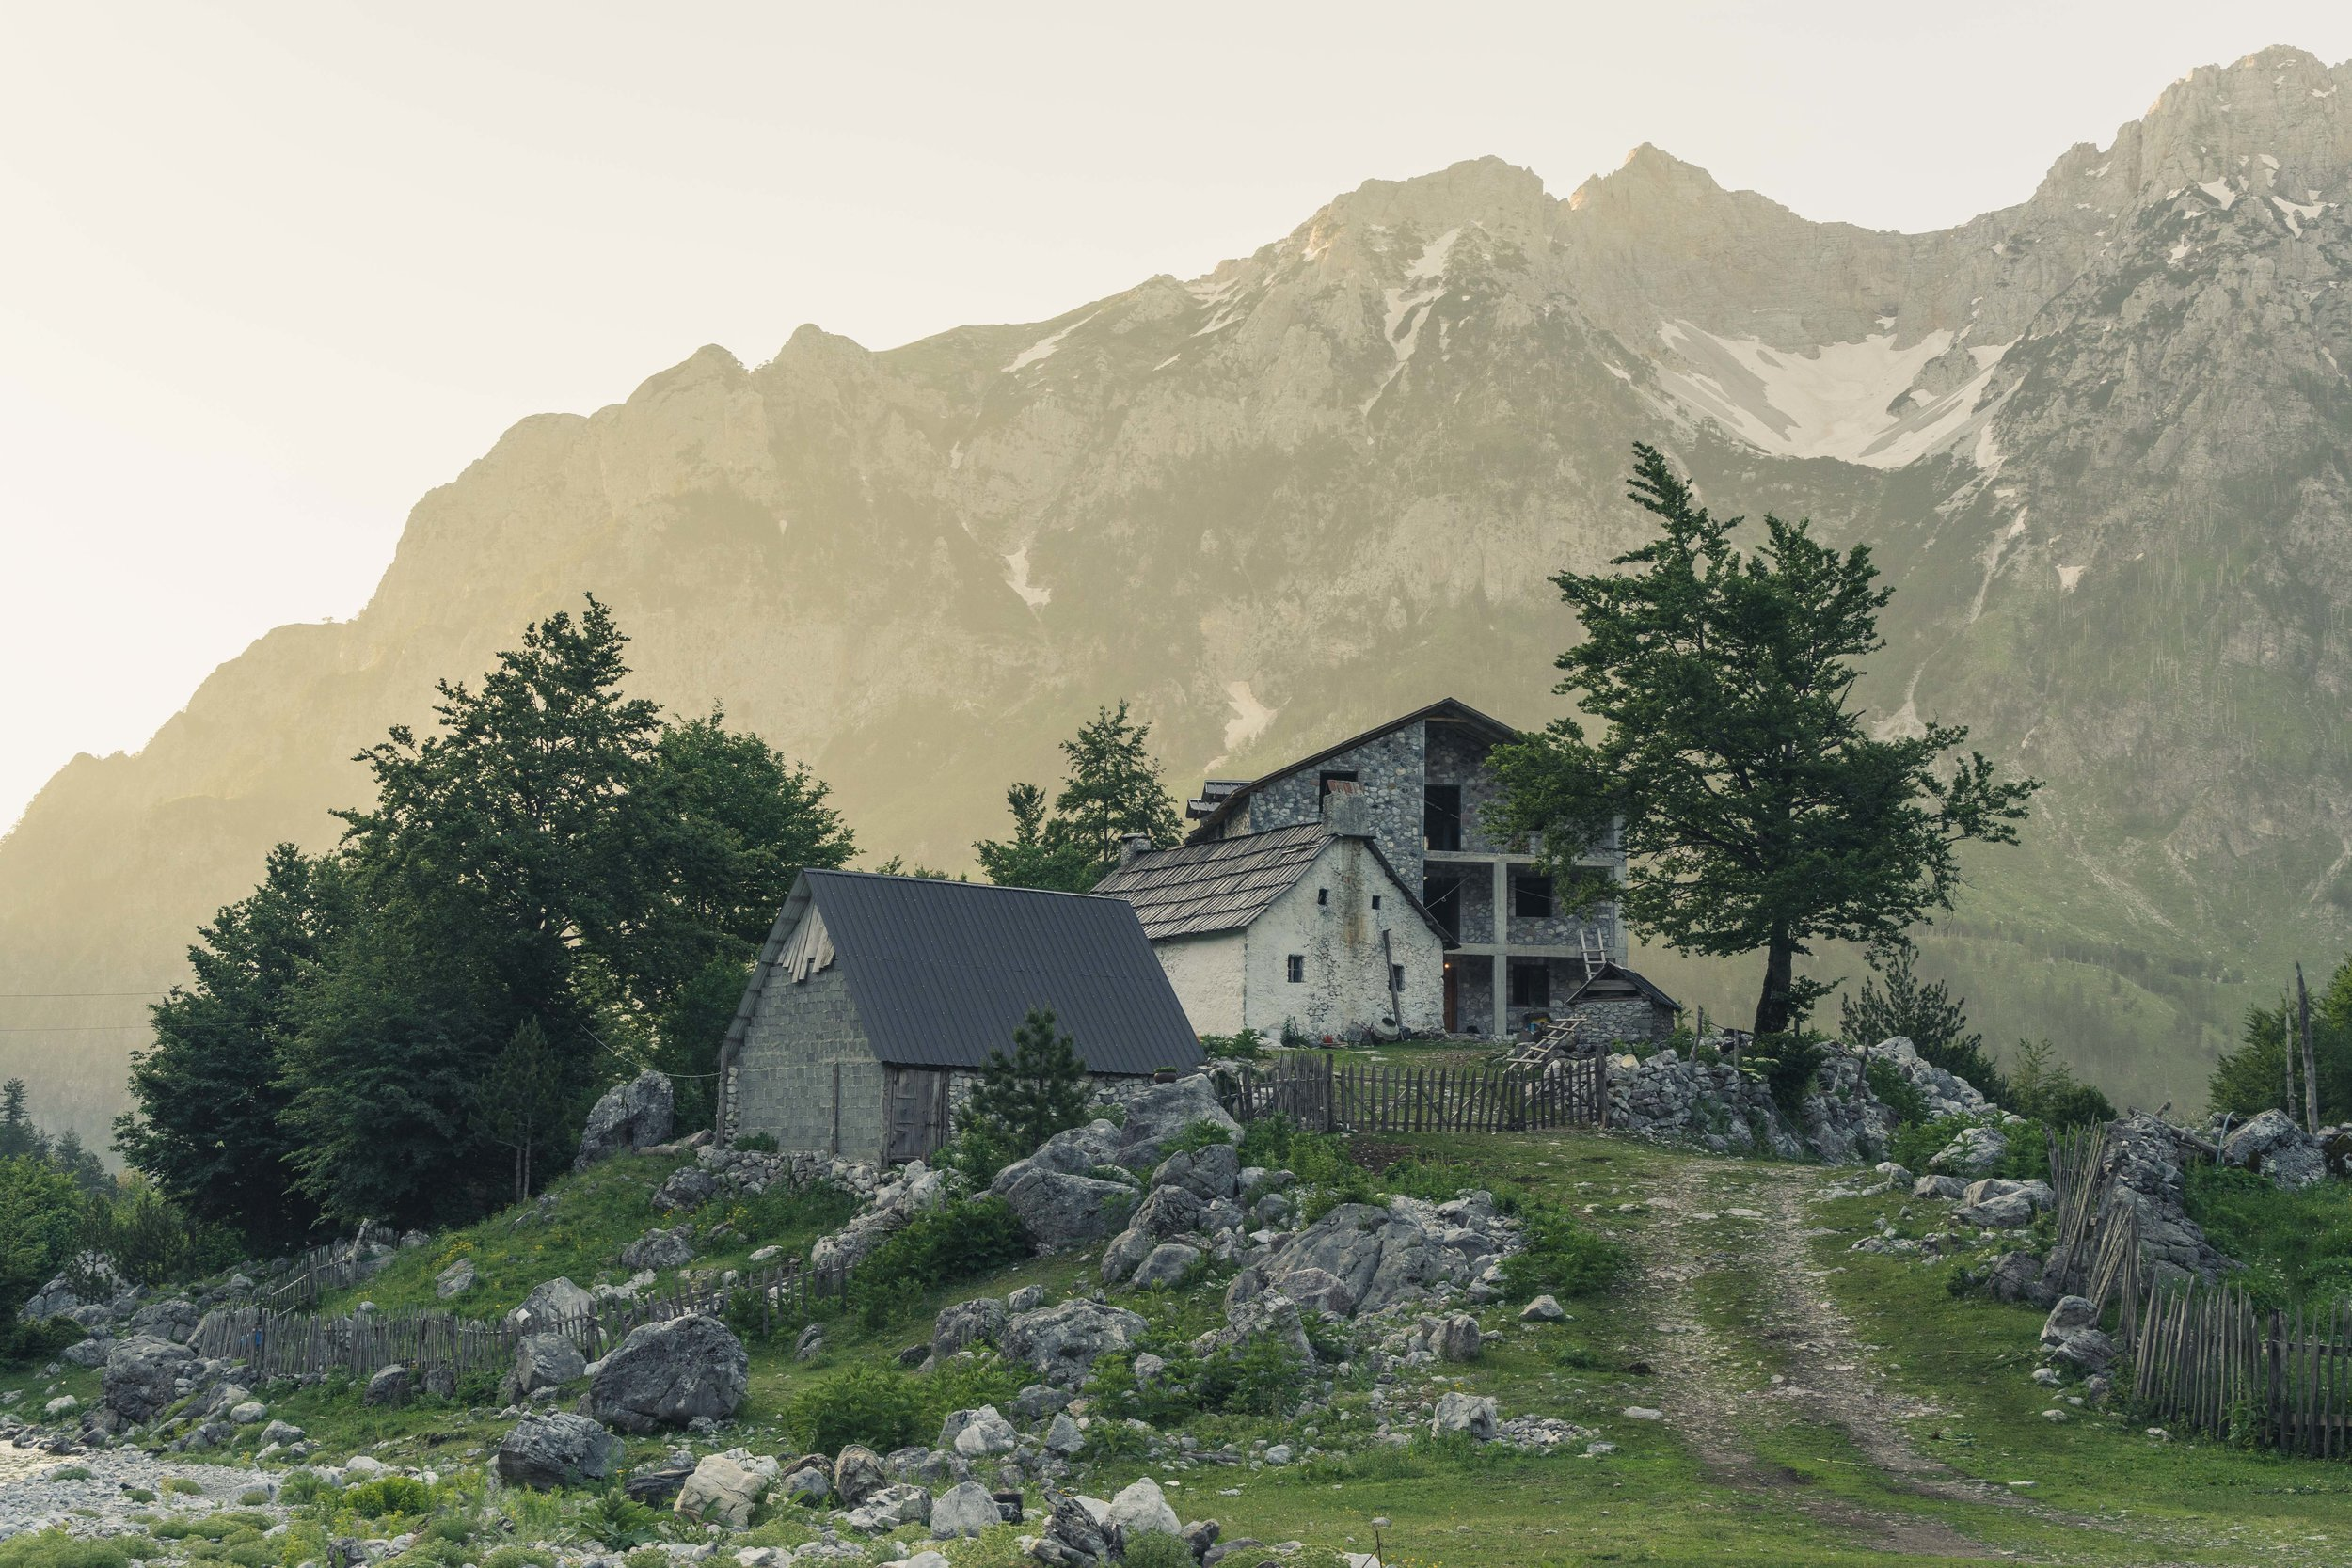 Morning trip up to the Montenegro boarder, Valbona Valley